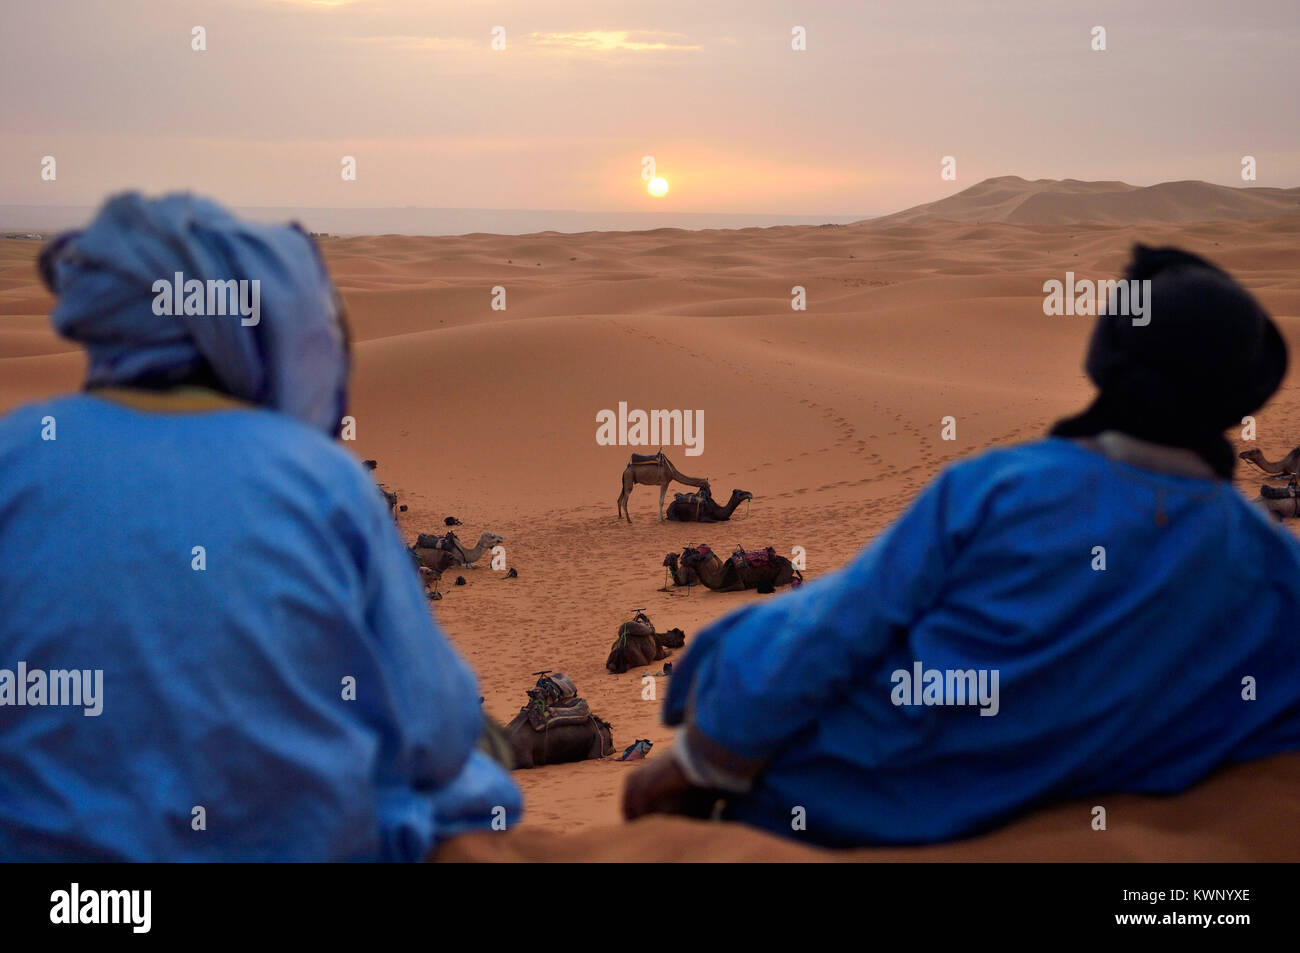 Berbers watching the sunrise on a camel excursion to the sand dunes at Merzouga, Morocco, North Africa - Stock Image